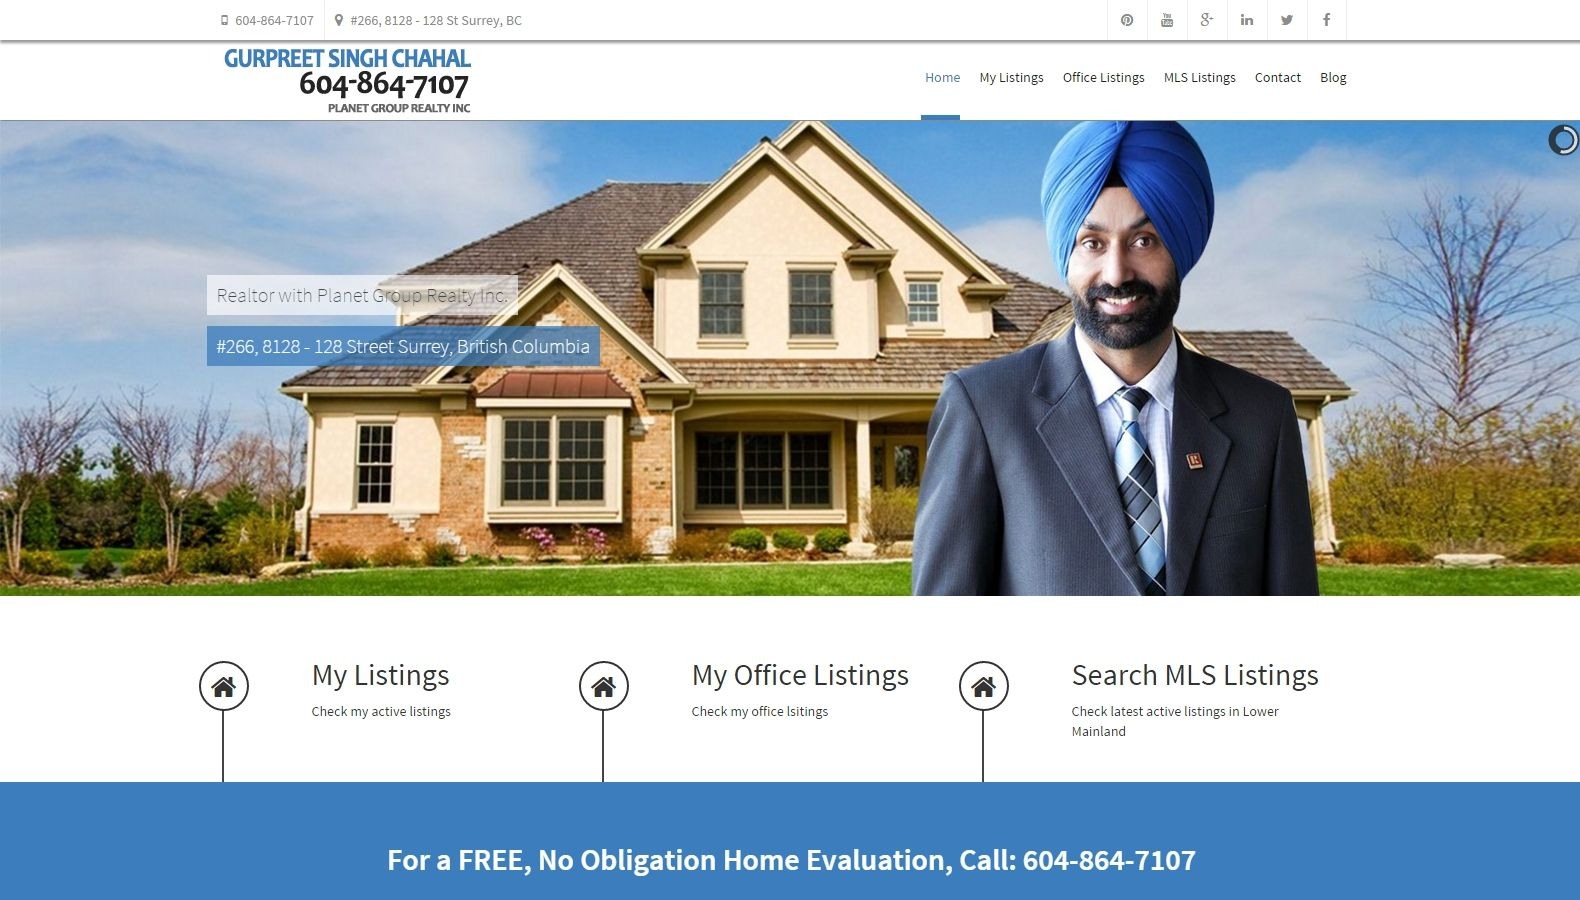 Realtor Gurpreet Singh Chahal - Website Designing By SEOTeam.ca